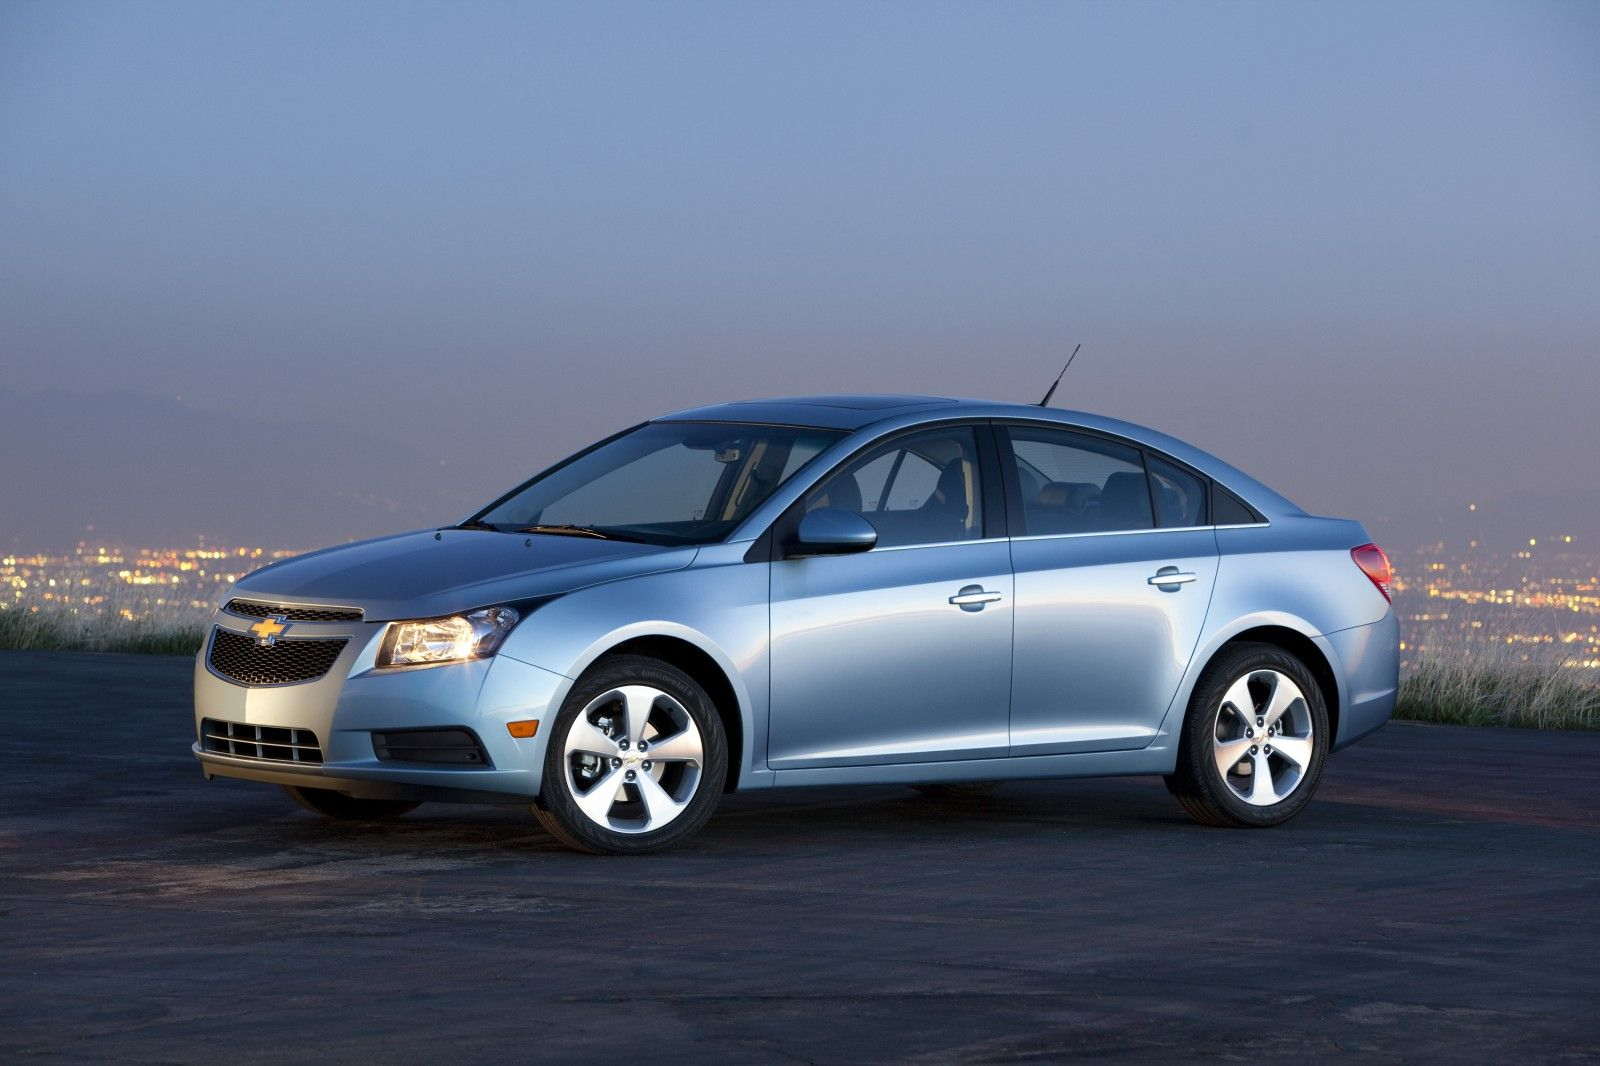 Gorgeous! I want a Cruze